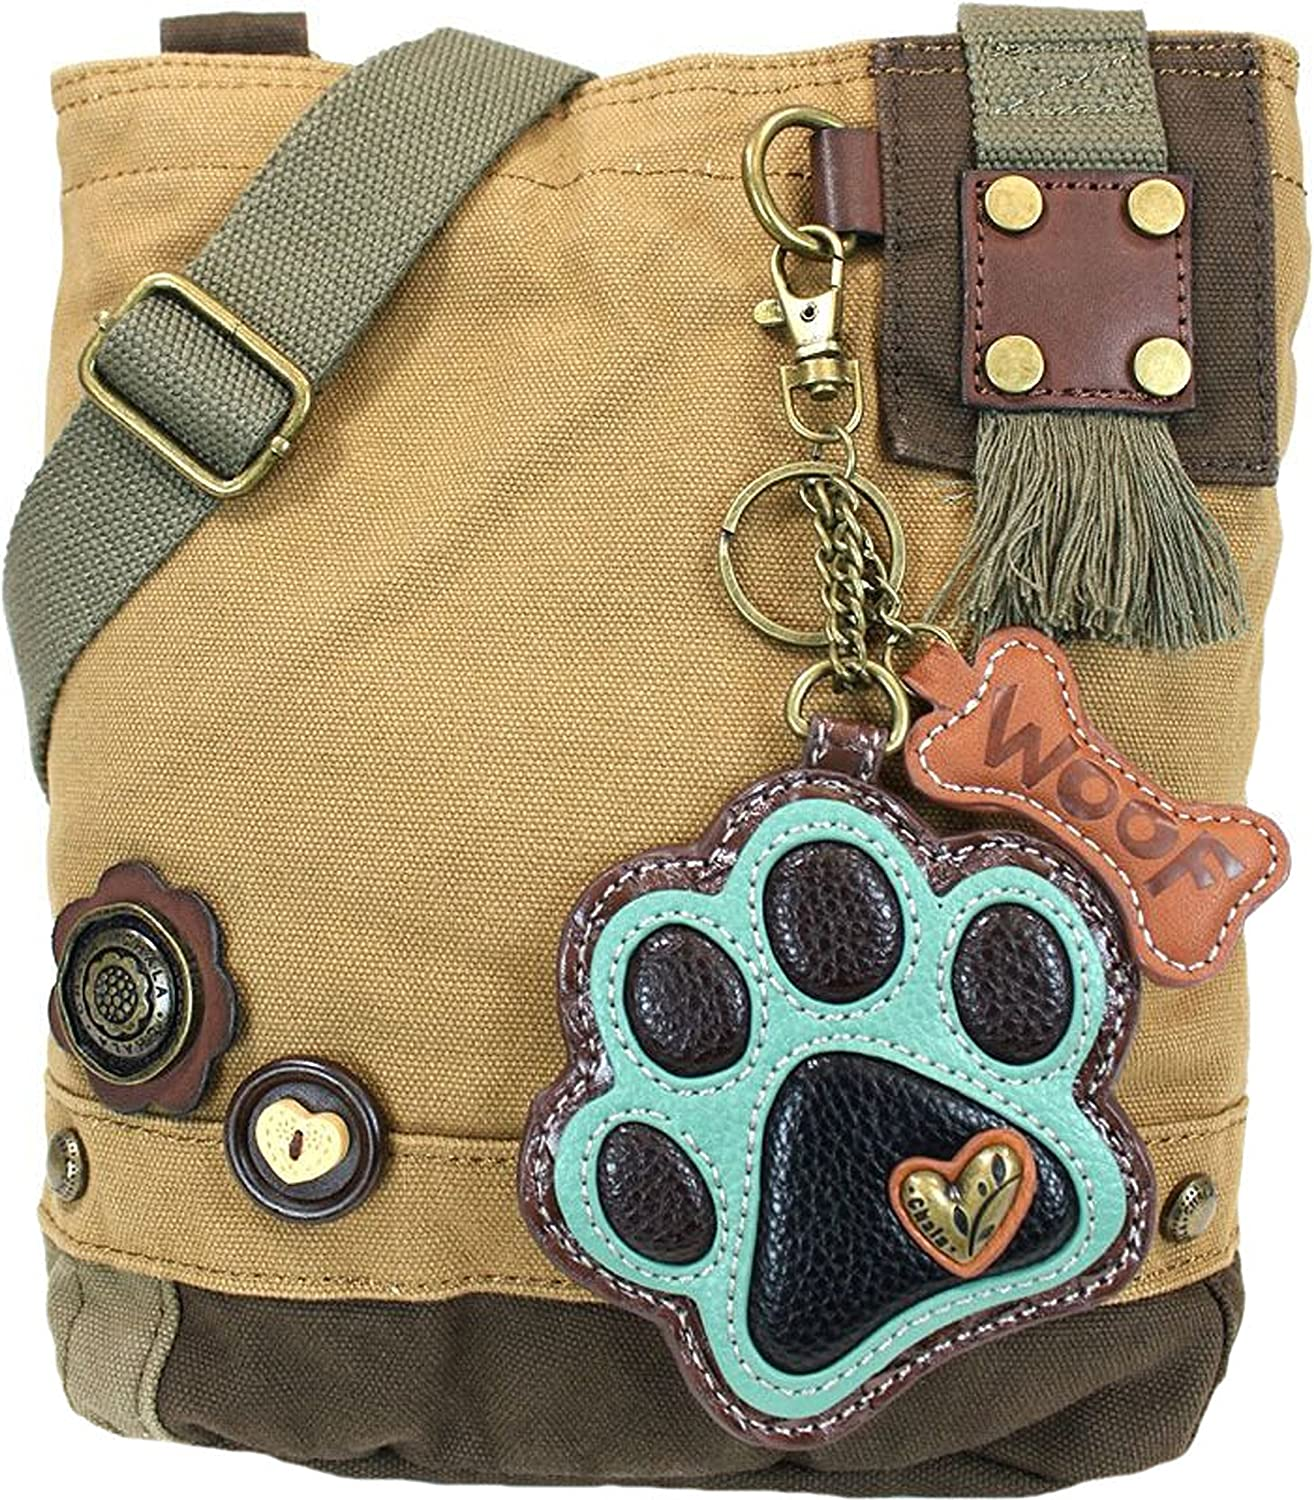 Chala Paw Print Patch Crossbody Handbag